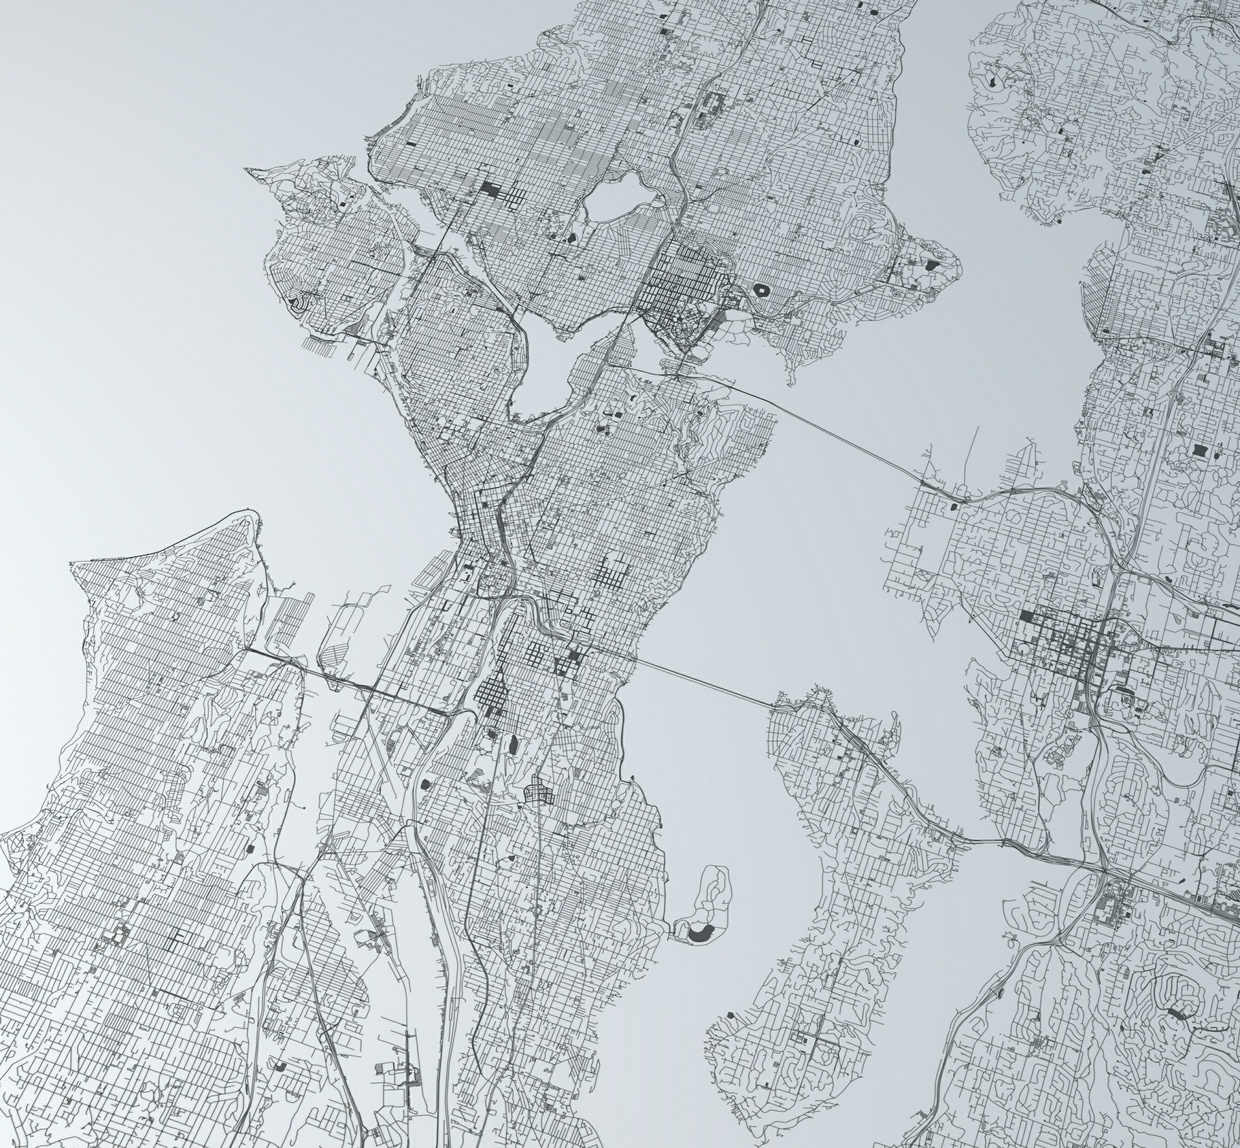 Seattle Road Network Architectural 3D Model